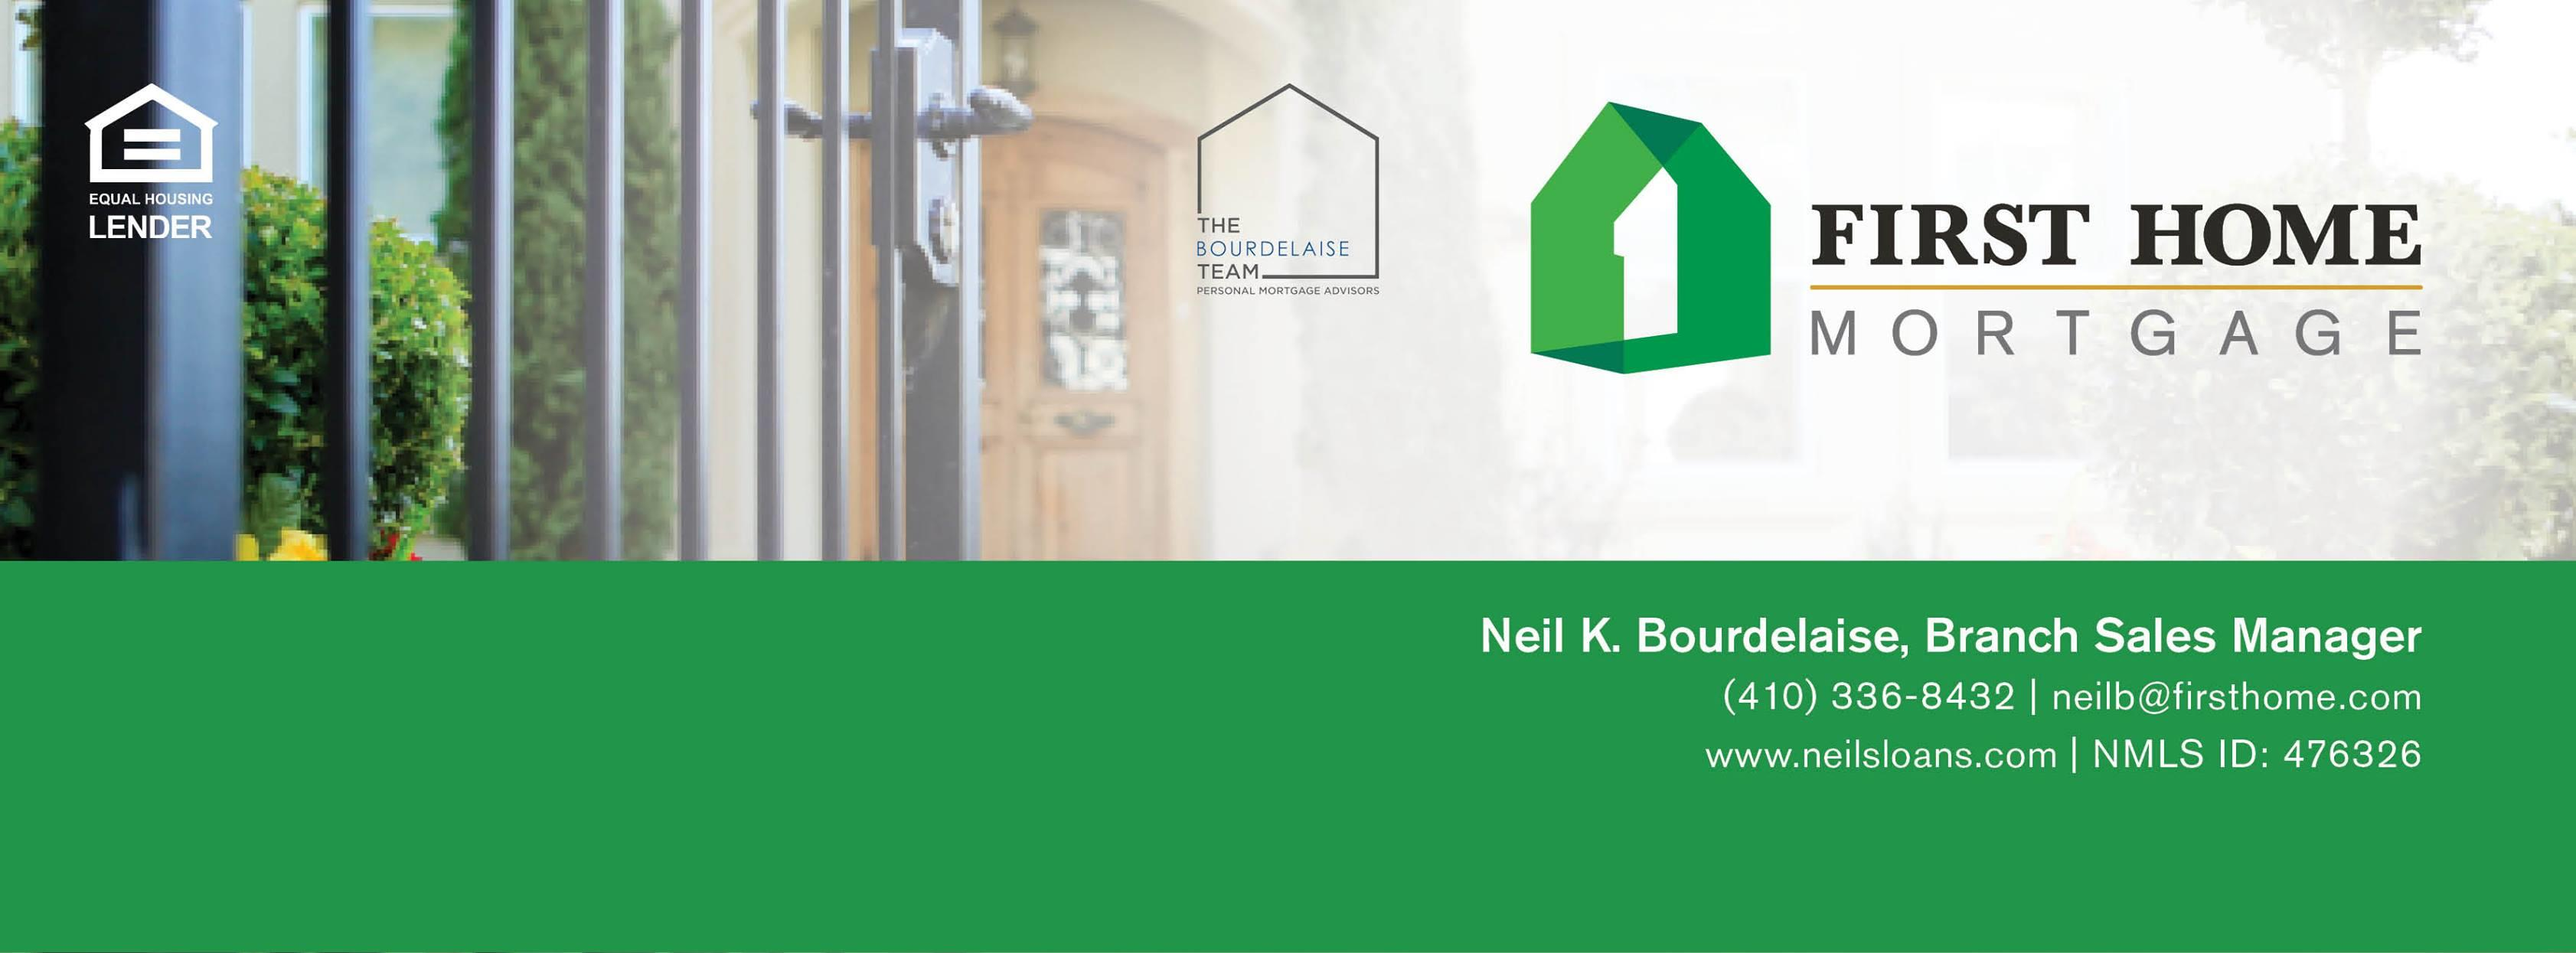 Neil Bourdelaise, Branch Sales Manager with First Home Mortgage image 3